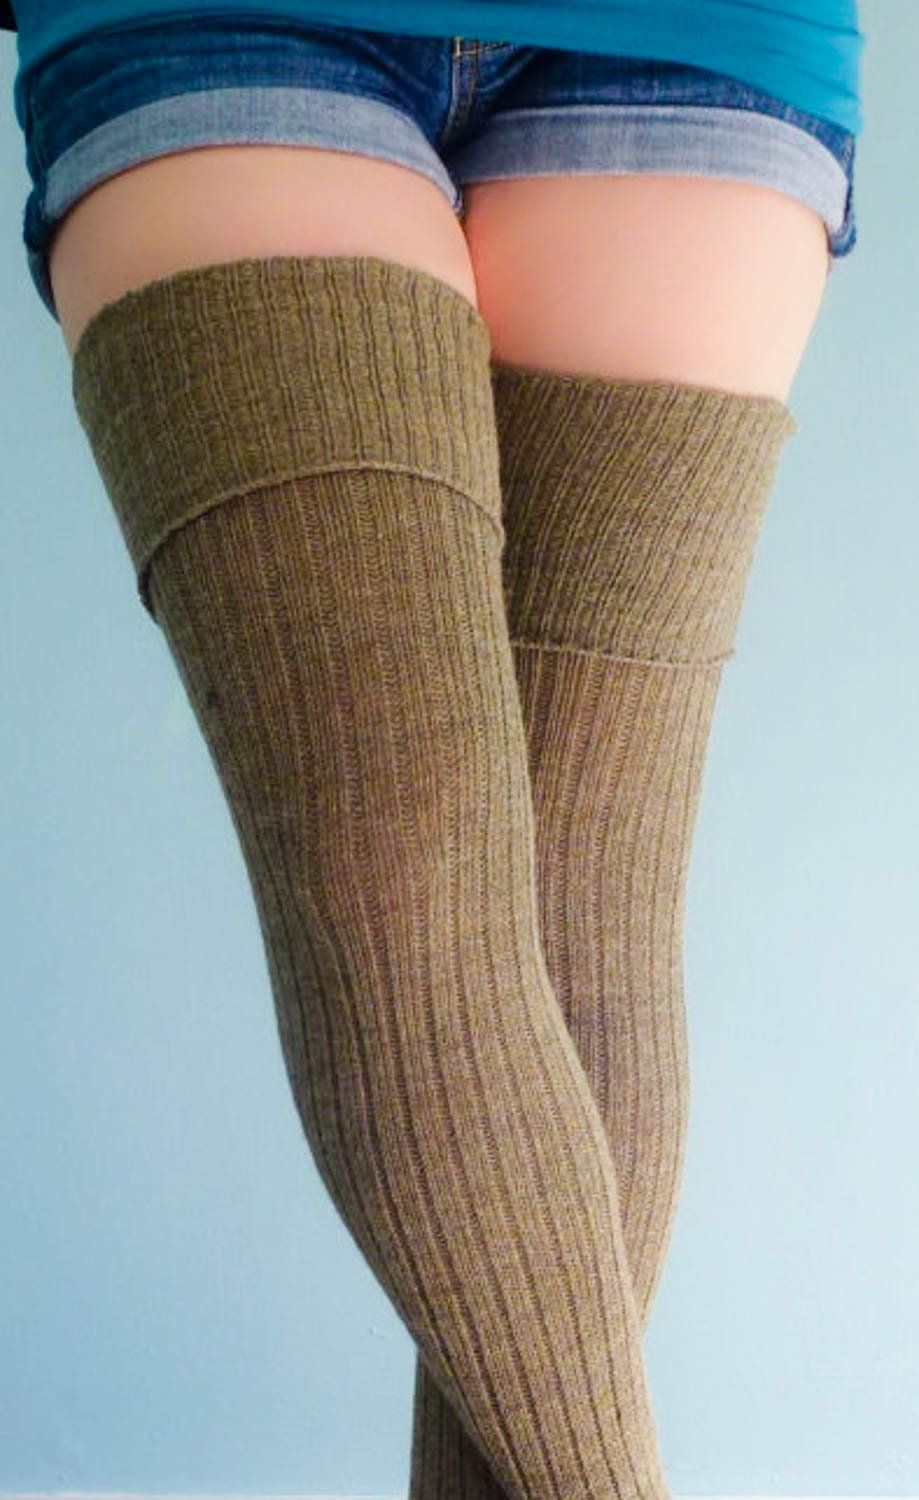 70af2bf5f Ribbed heathered BROWN Extra long Thigh Highs - Women s Tall Socks - Mens  Tall Socks - Better than LEGWARMERS - Boot Socks - Sweater socks